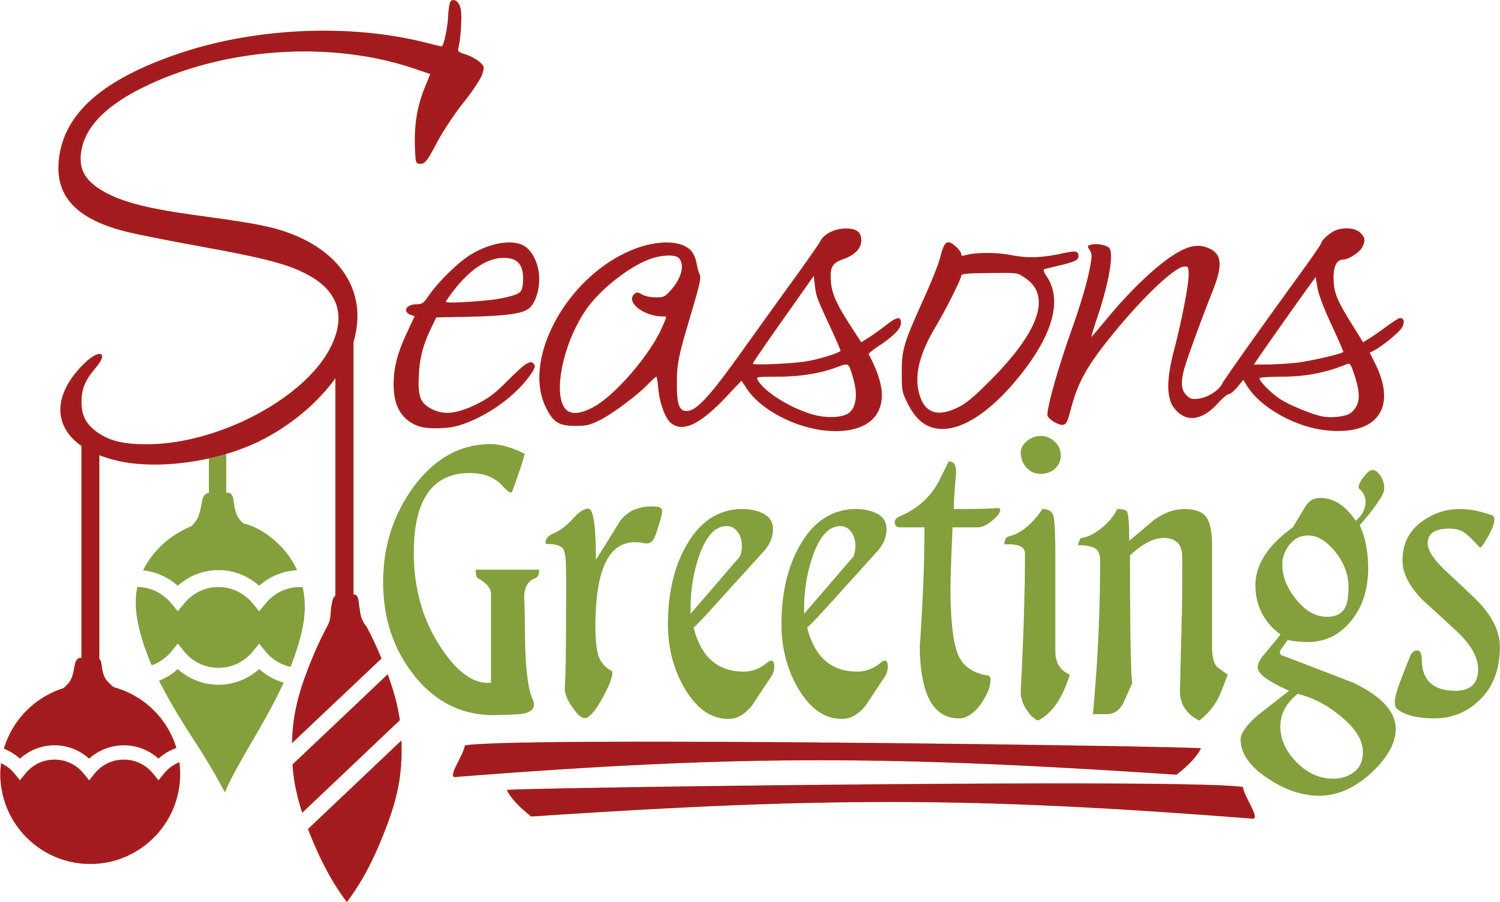 Seasons greetings from Webhaptic Intelligence